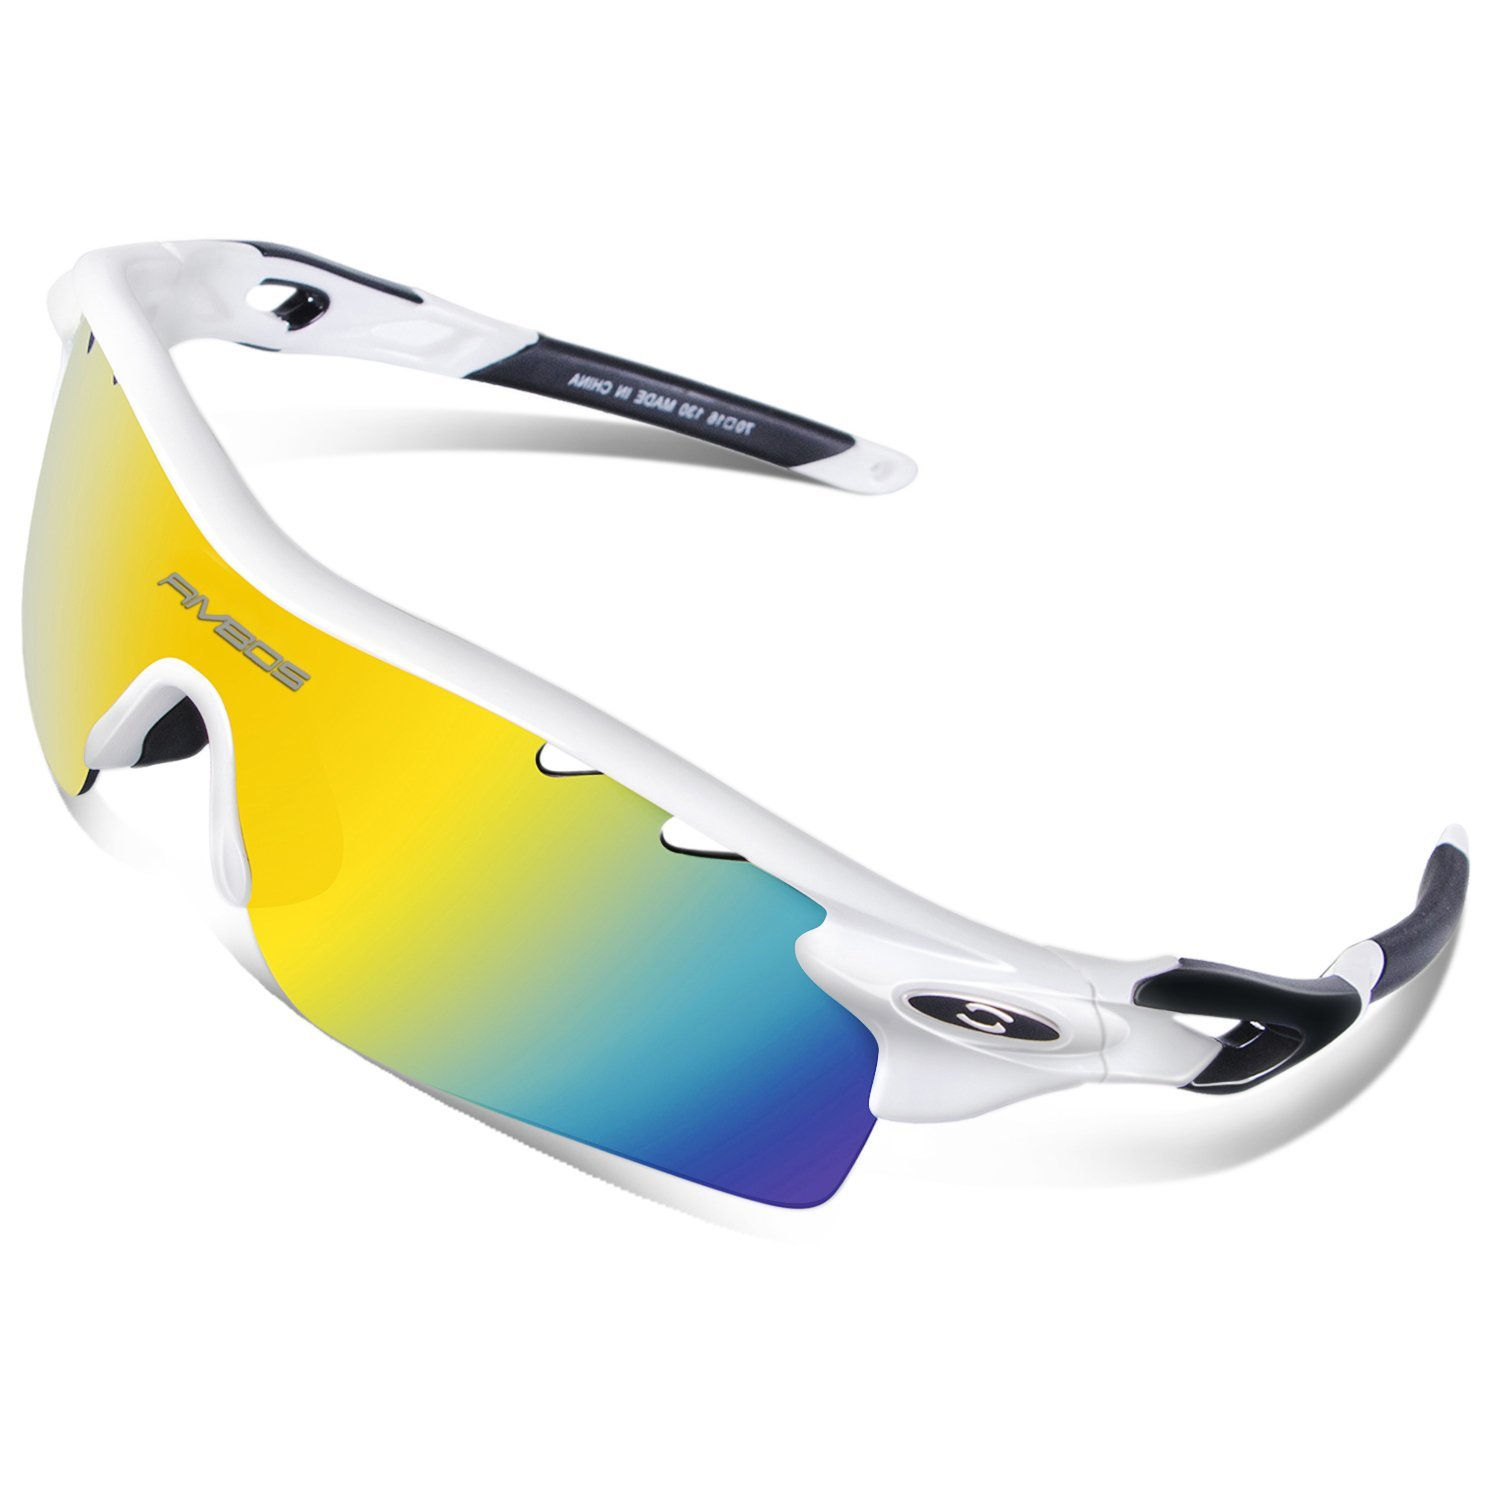 75edf229a8 RIVBOS 801 Polarized Sports Sunglasses Sun Glasses with 5 Interchangeable  Lenses for Men Women Baseball Cycling